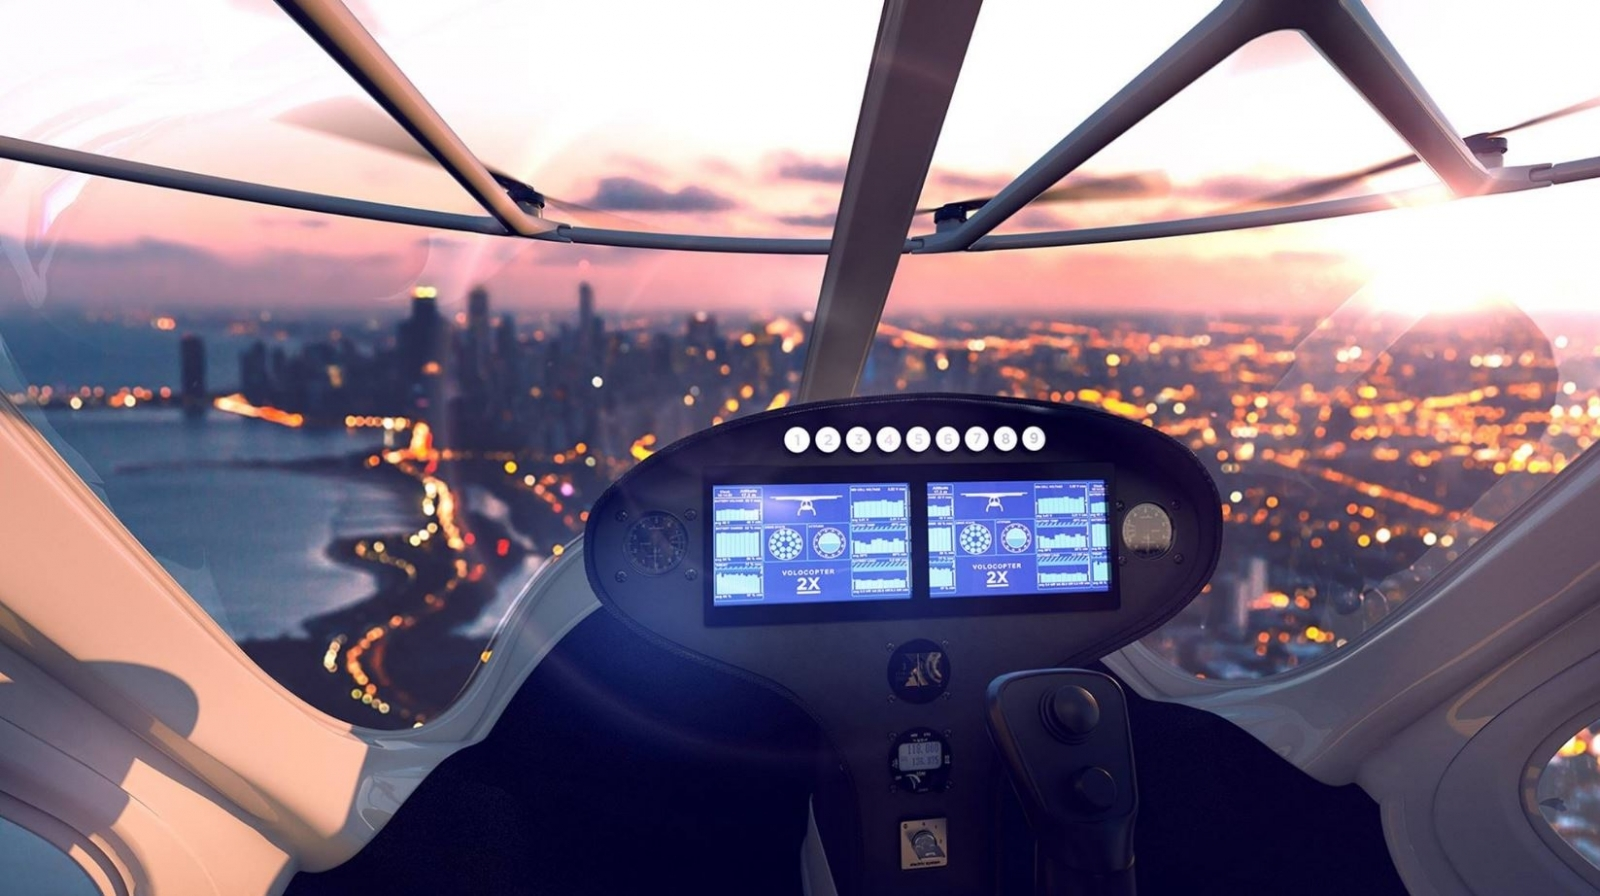 dubai 39 s world first self flying taxis new images take look inside automated aircraft. Black Bedroom Furniture Sets. Home Design Ideas